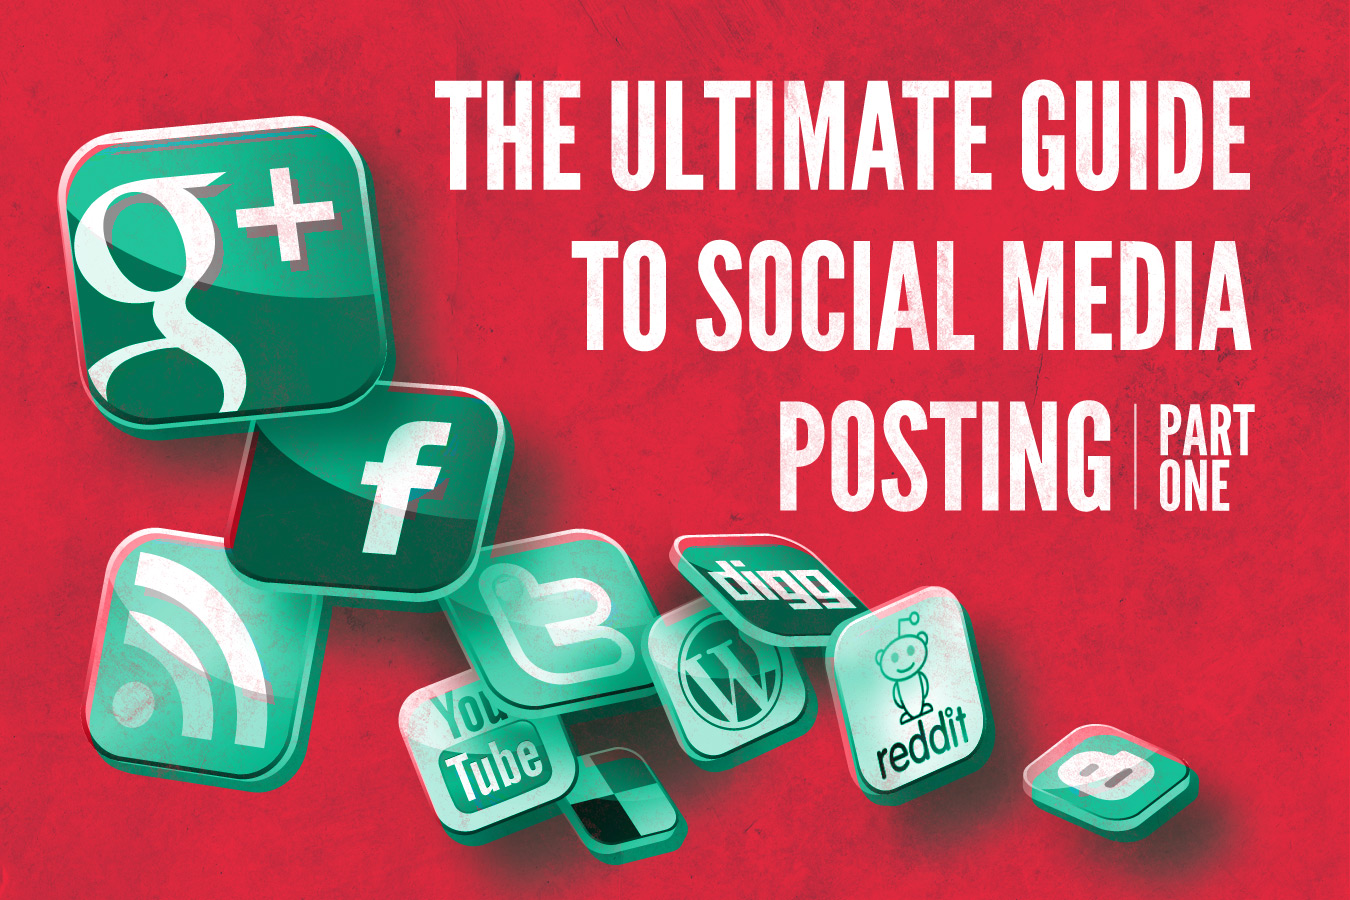 The Ultimate Guide To Social Media Posting Part 1